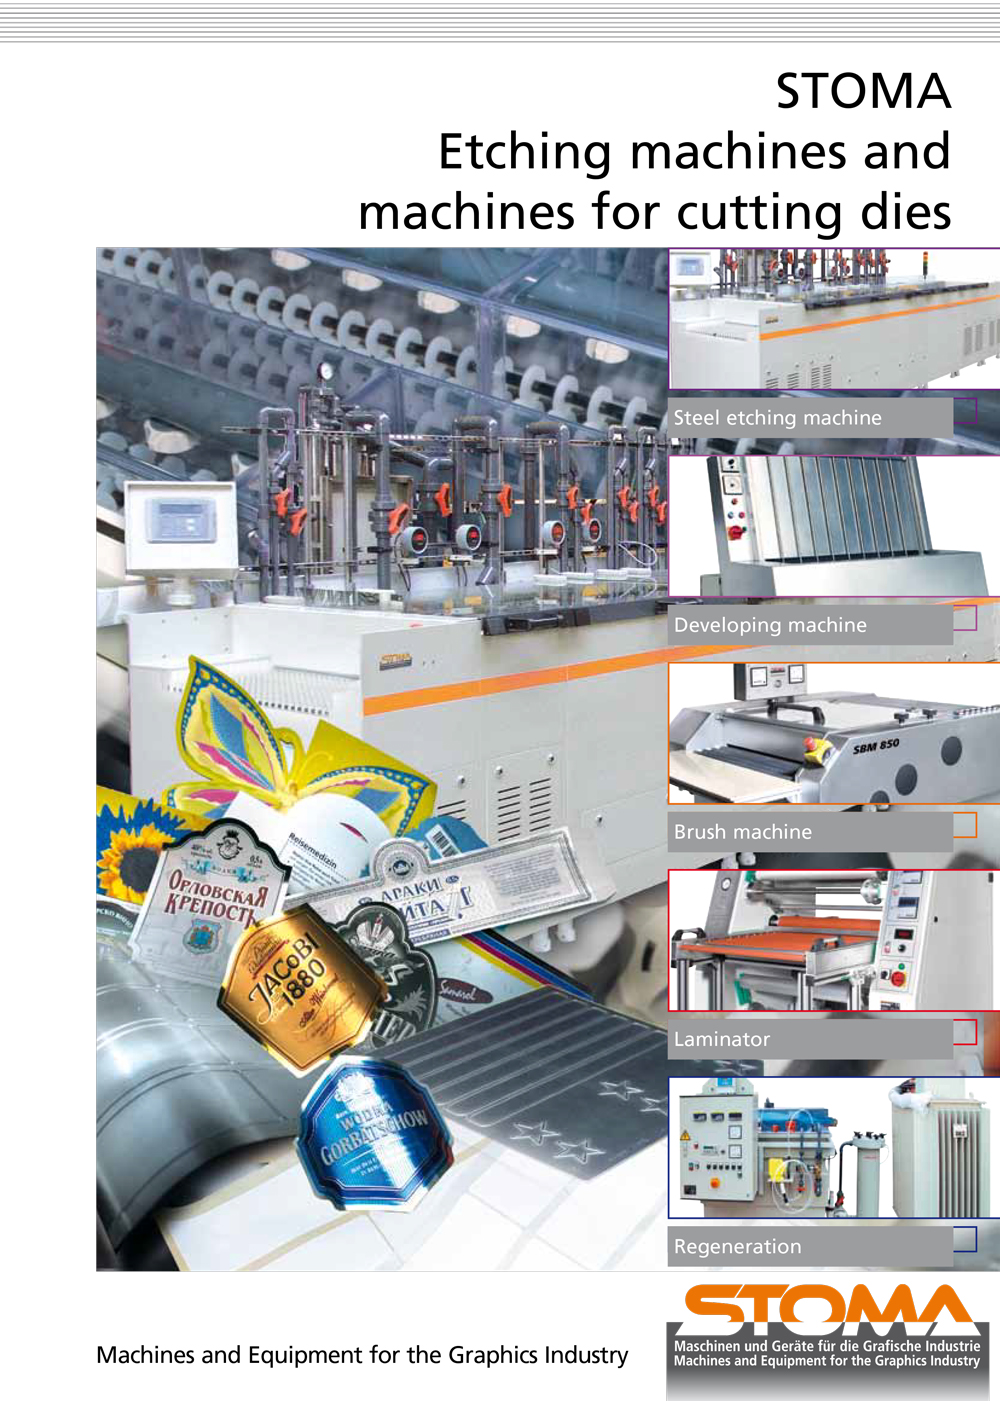 STOMA Etching machines and machines for cutting dies